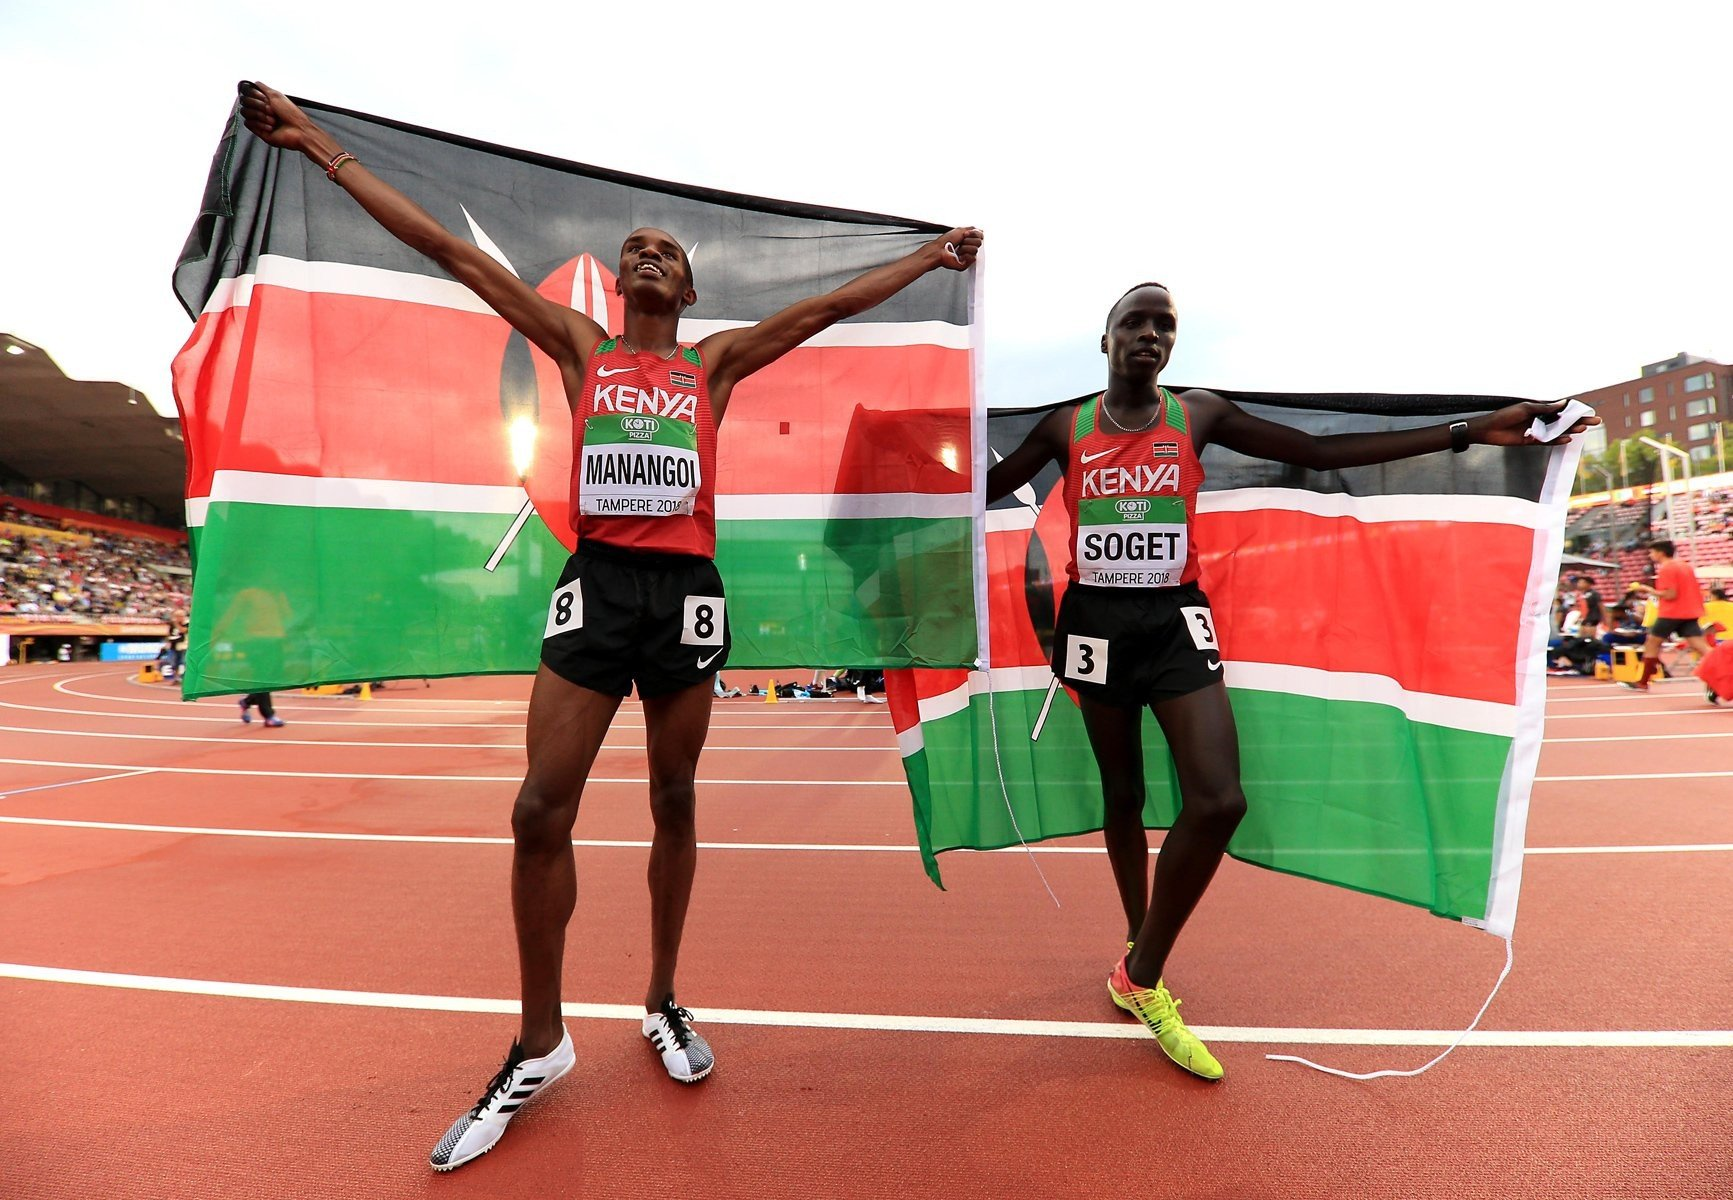 Kenya's George Manangoi celebrates winning the Men's 1500m with compatriot Justus Soget at the IAAF World U20 Championships Tampere 2018 / Photo Credit: Getty Images for IAAF